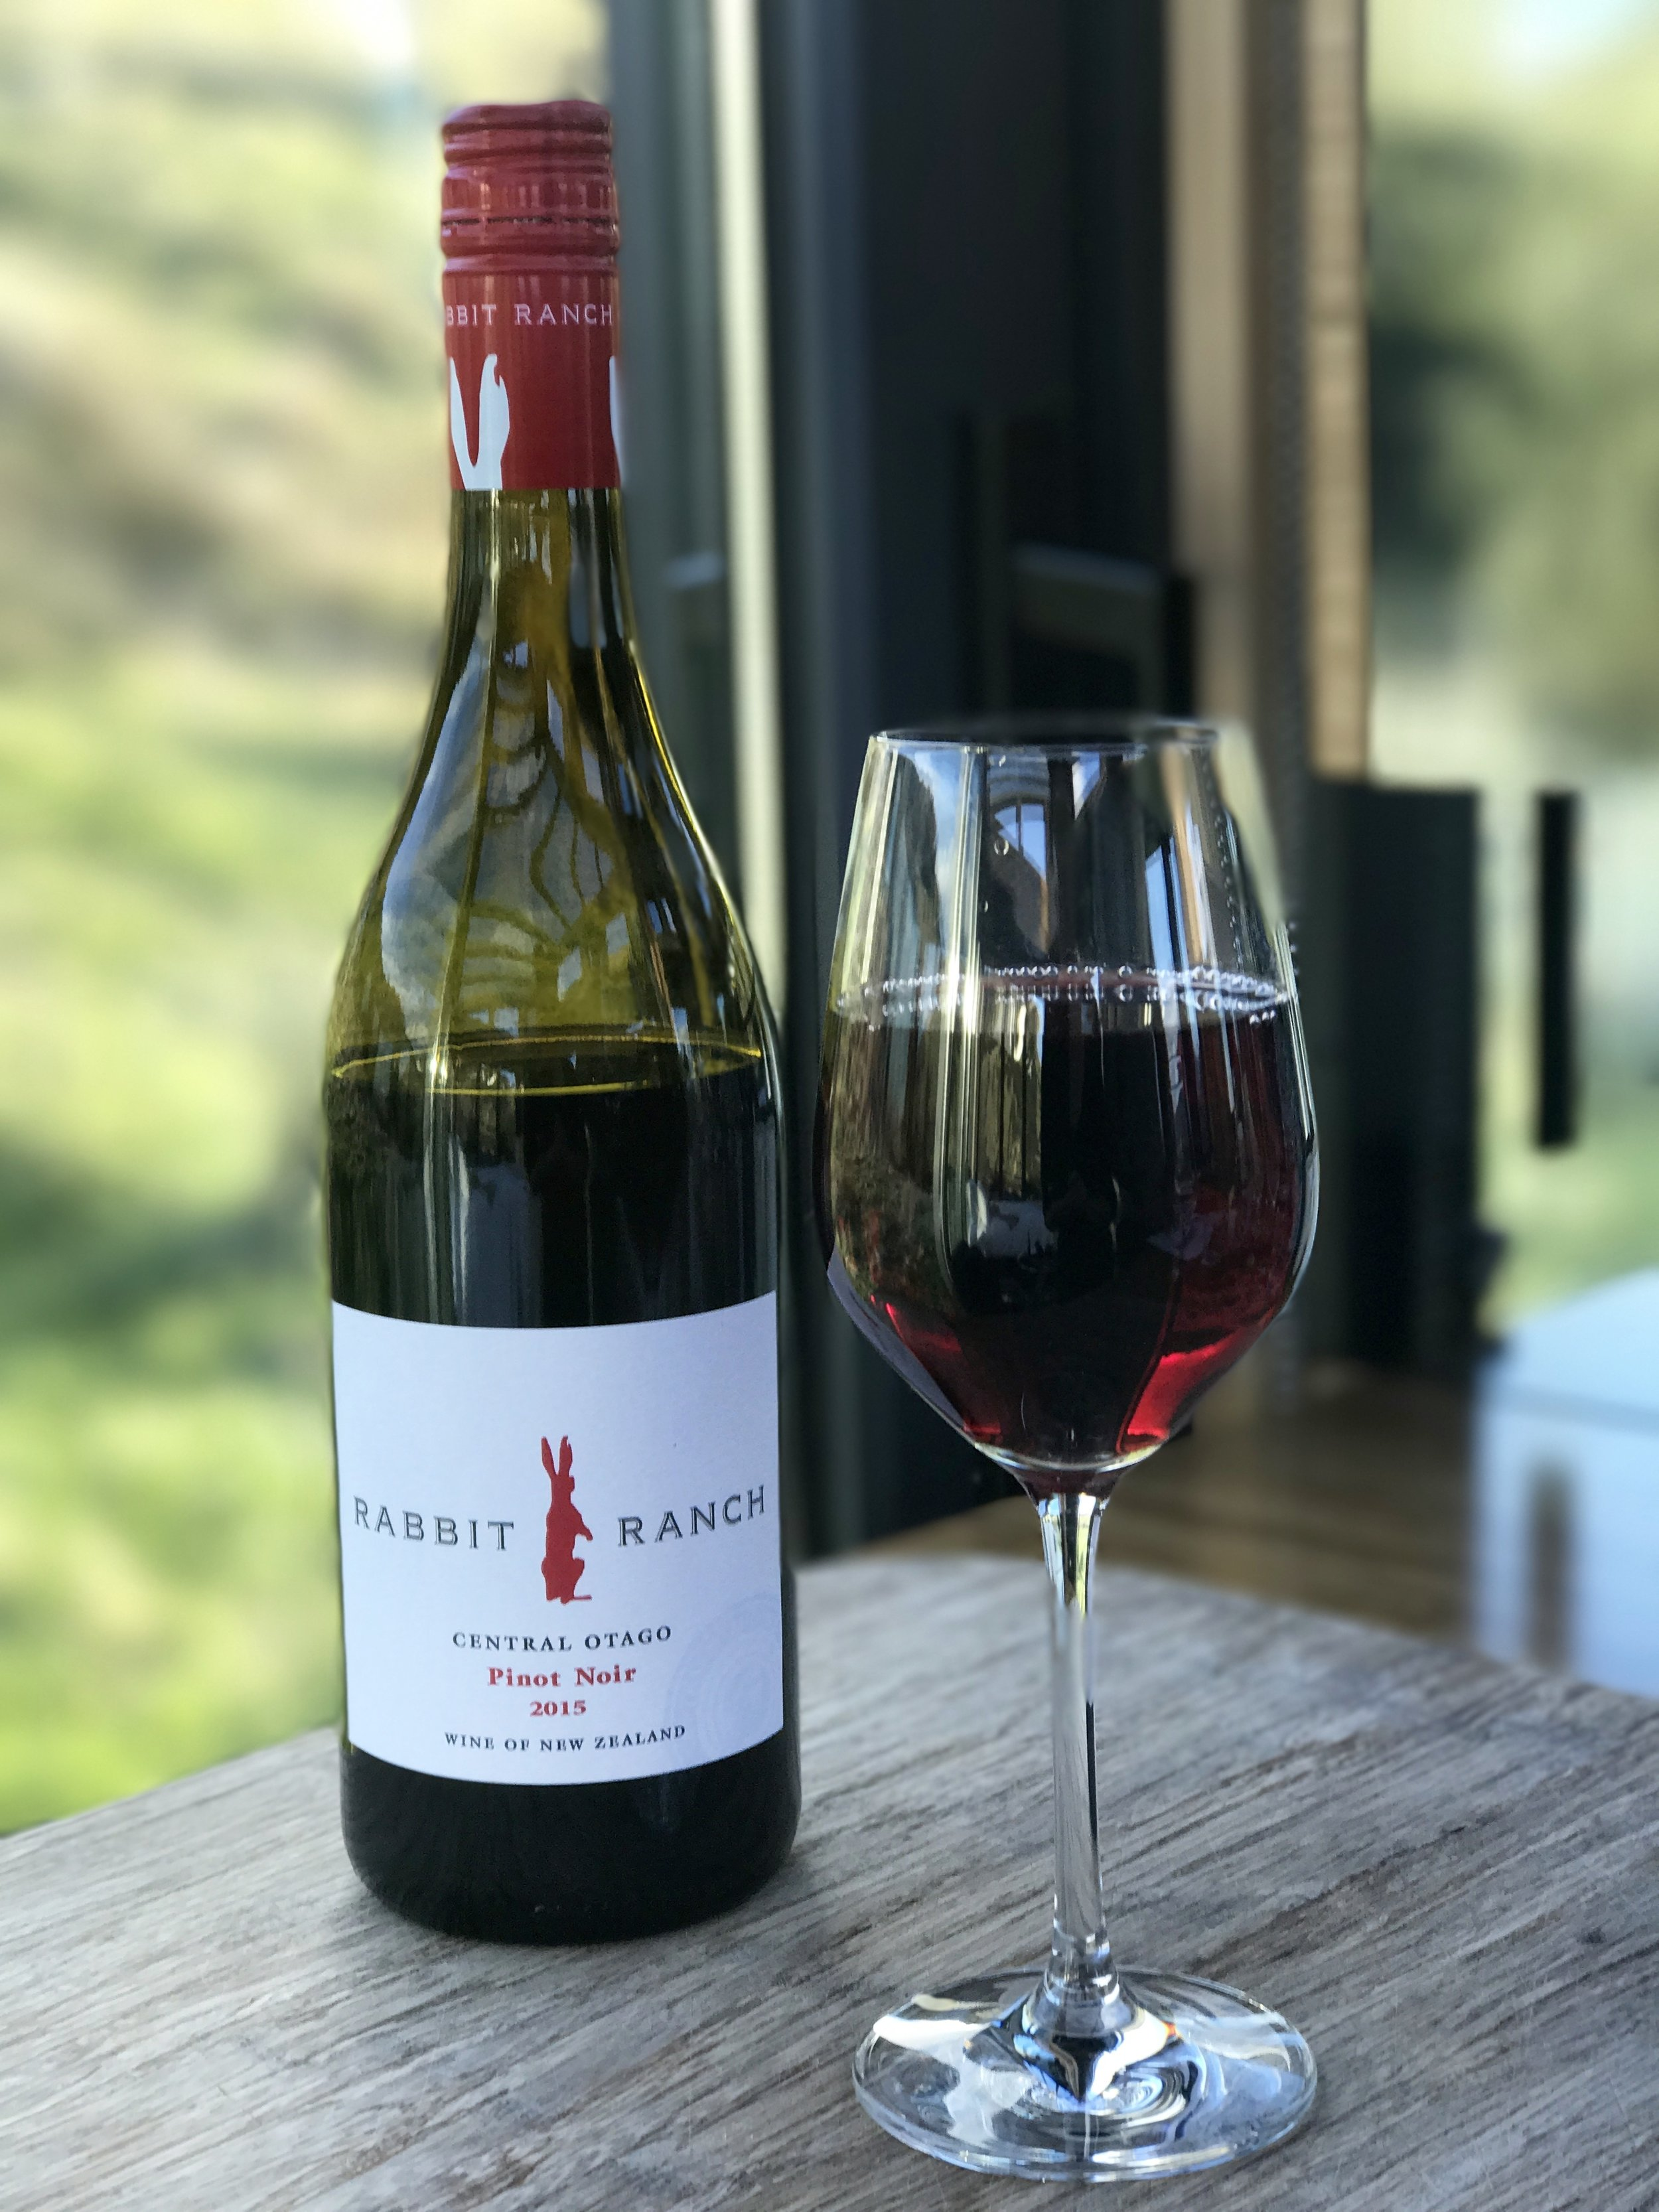 Rabbit Ranch, Central Otago pinot noir from the local Four Square (image by Jacqui Gibson).